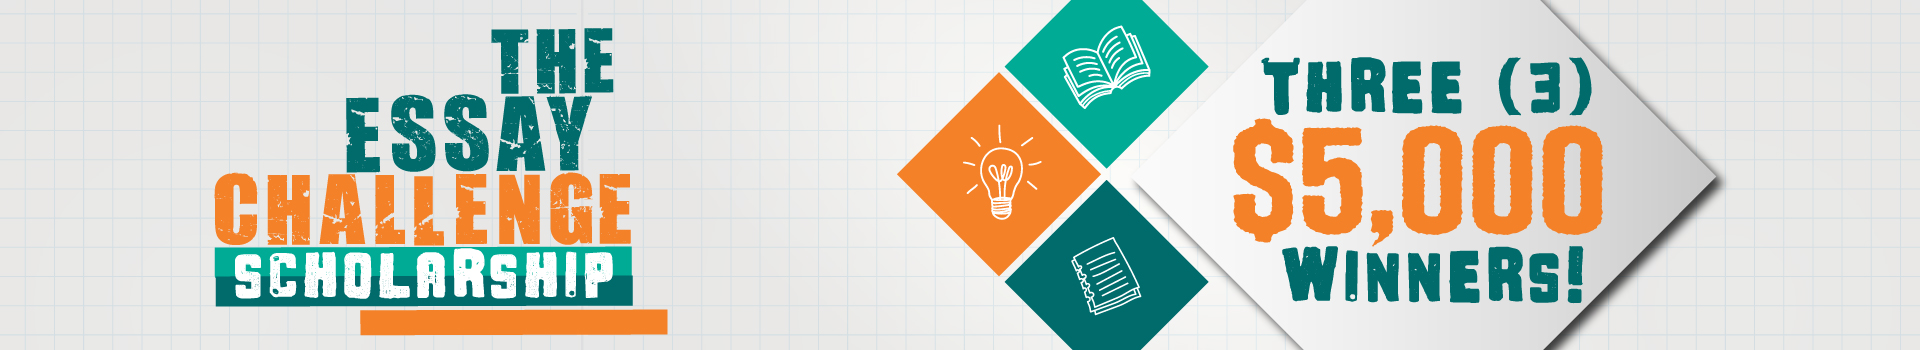 "Light gray banner with teal and orange stating ""The Essay Challenge Scholarship"" with ""Three (3) $5,000 Winners!"". Teal, and orange icons with illustrated images of an open book, lightbulb, and bill are present within the tiles."